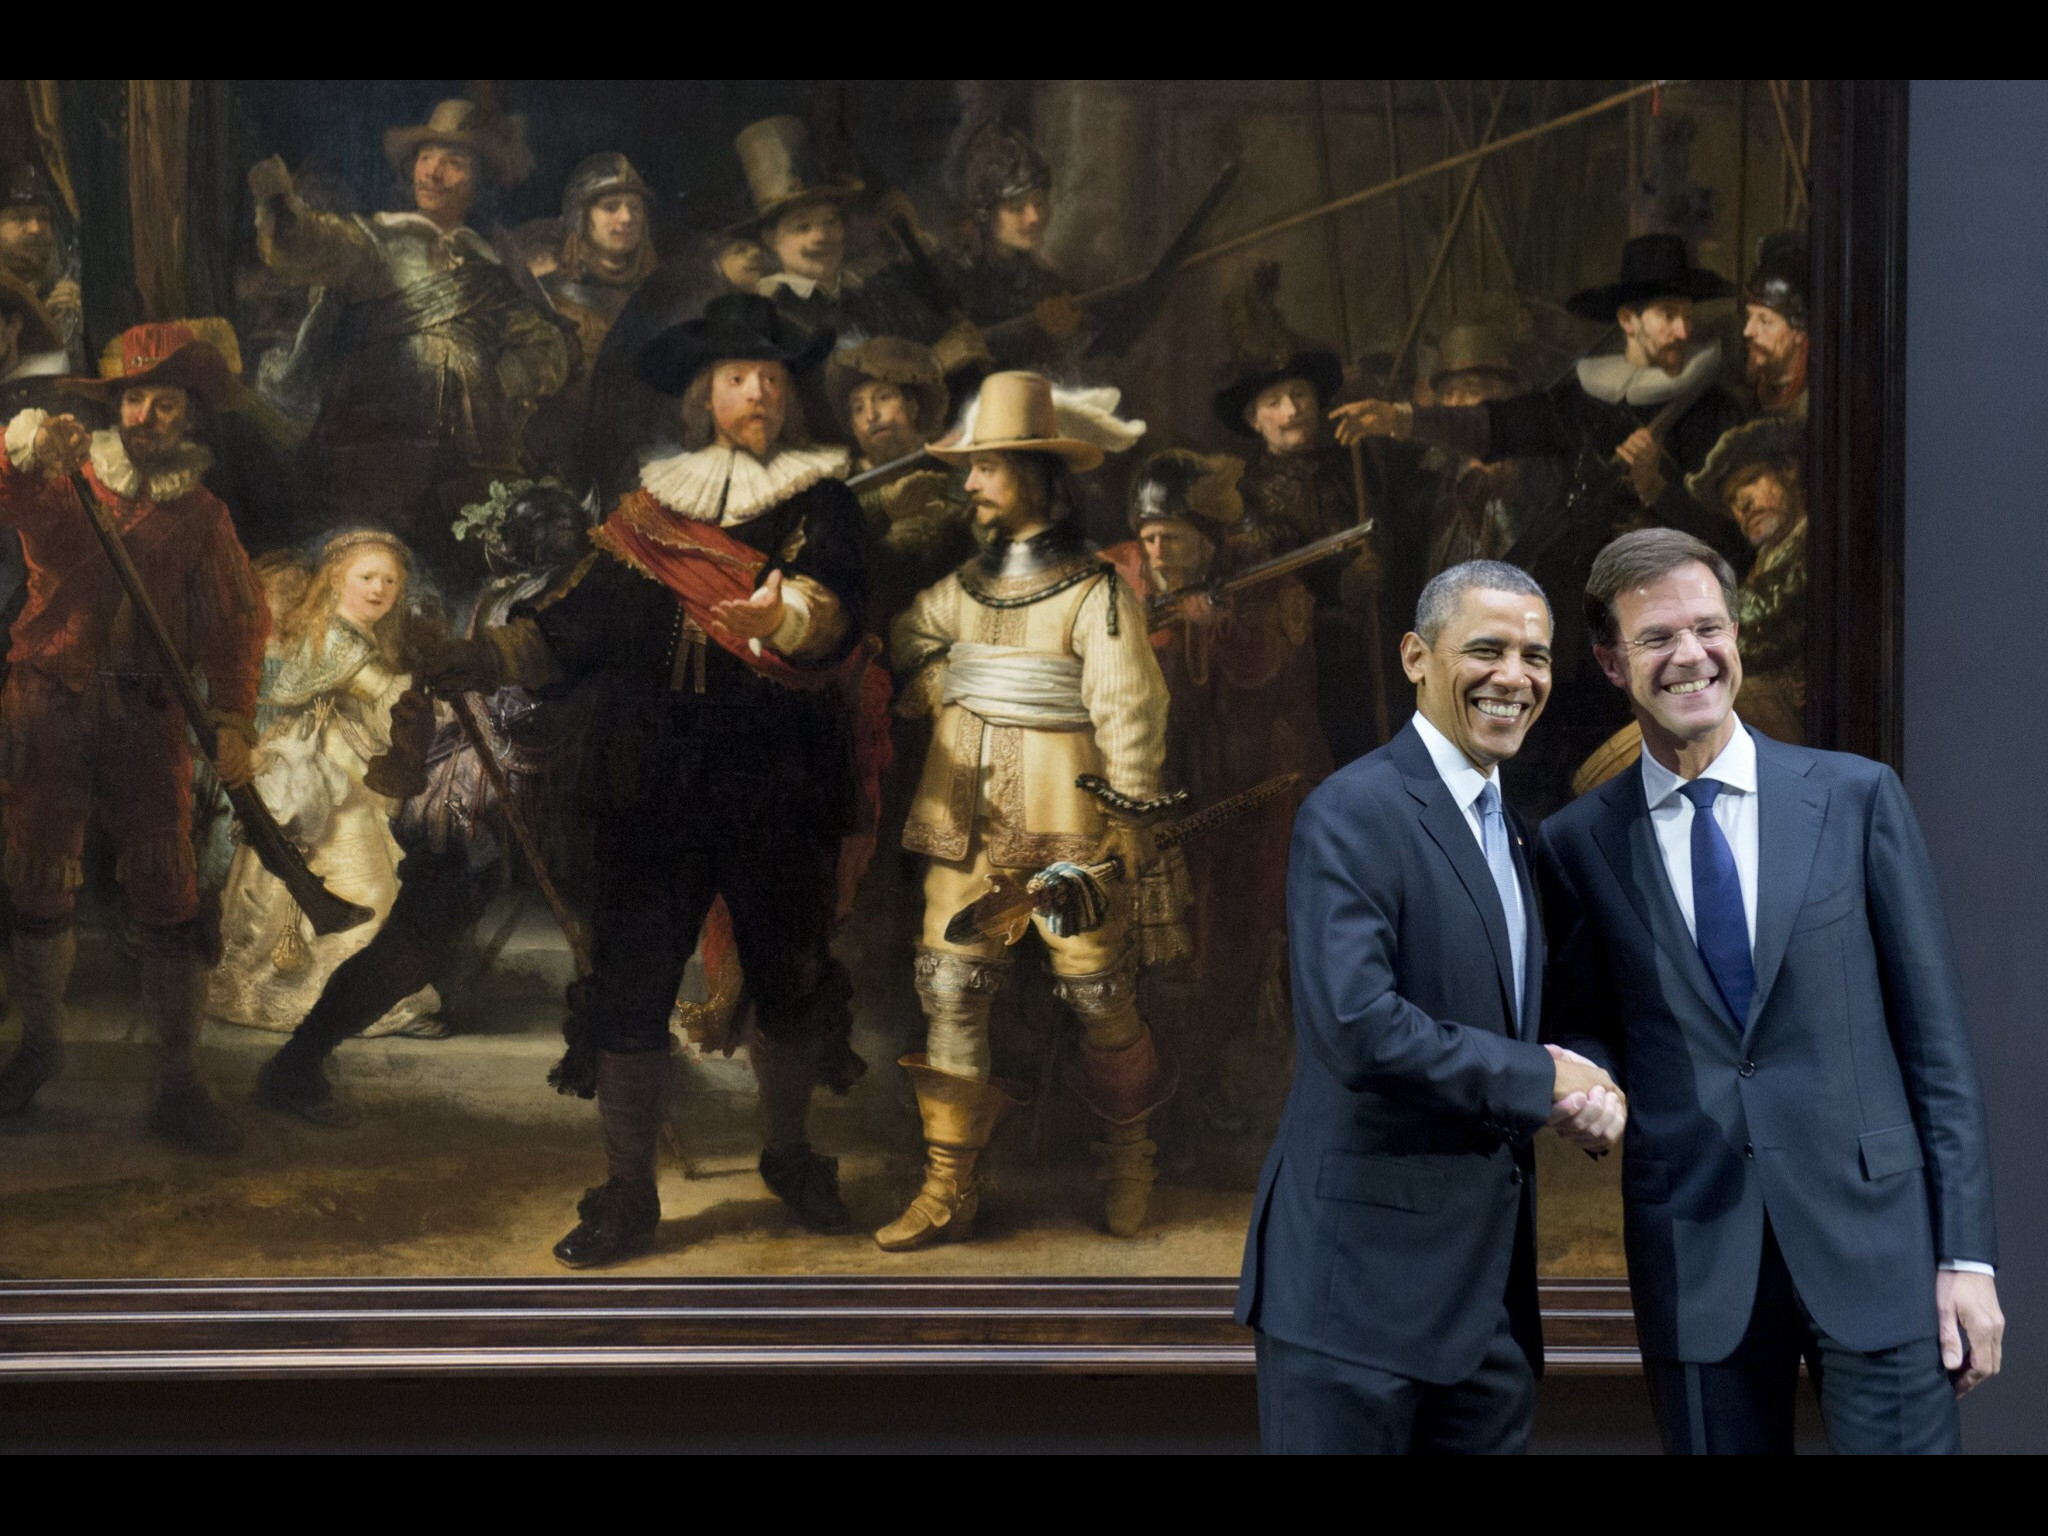 2048x1536 Obama and Rutten in front of The Night Watch a 1642 painting of Rembrandt  van Rijn